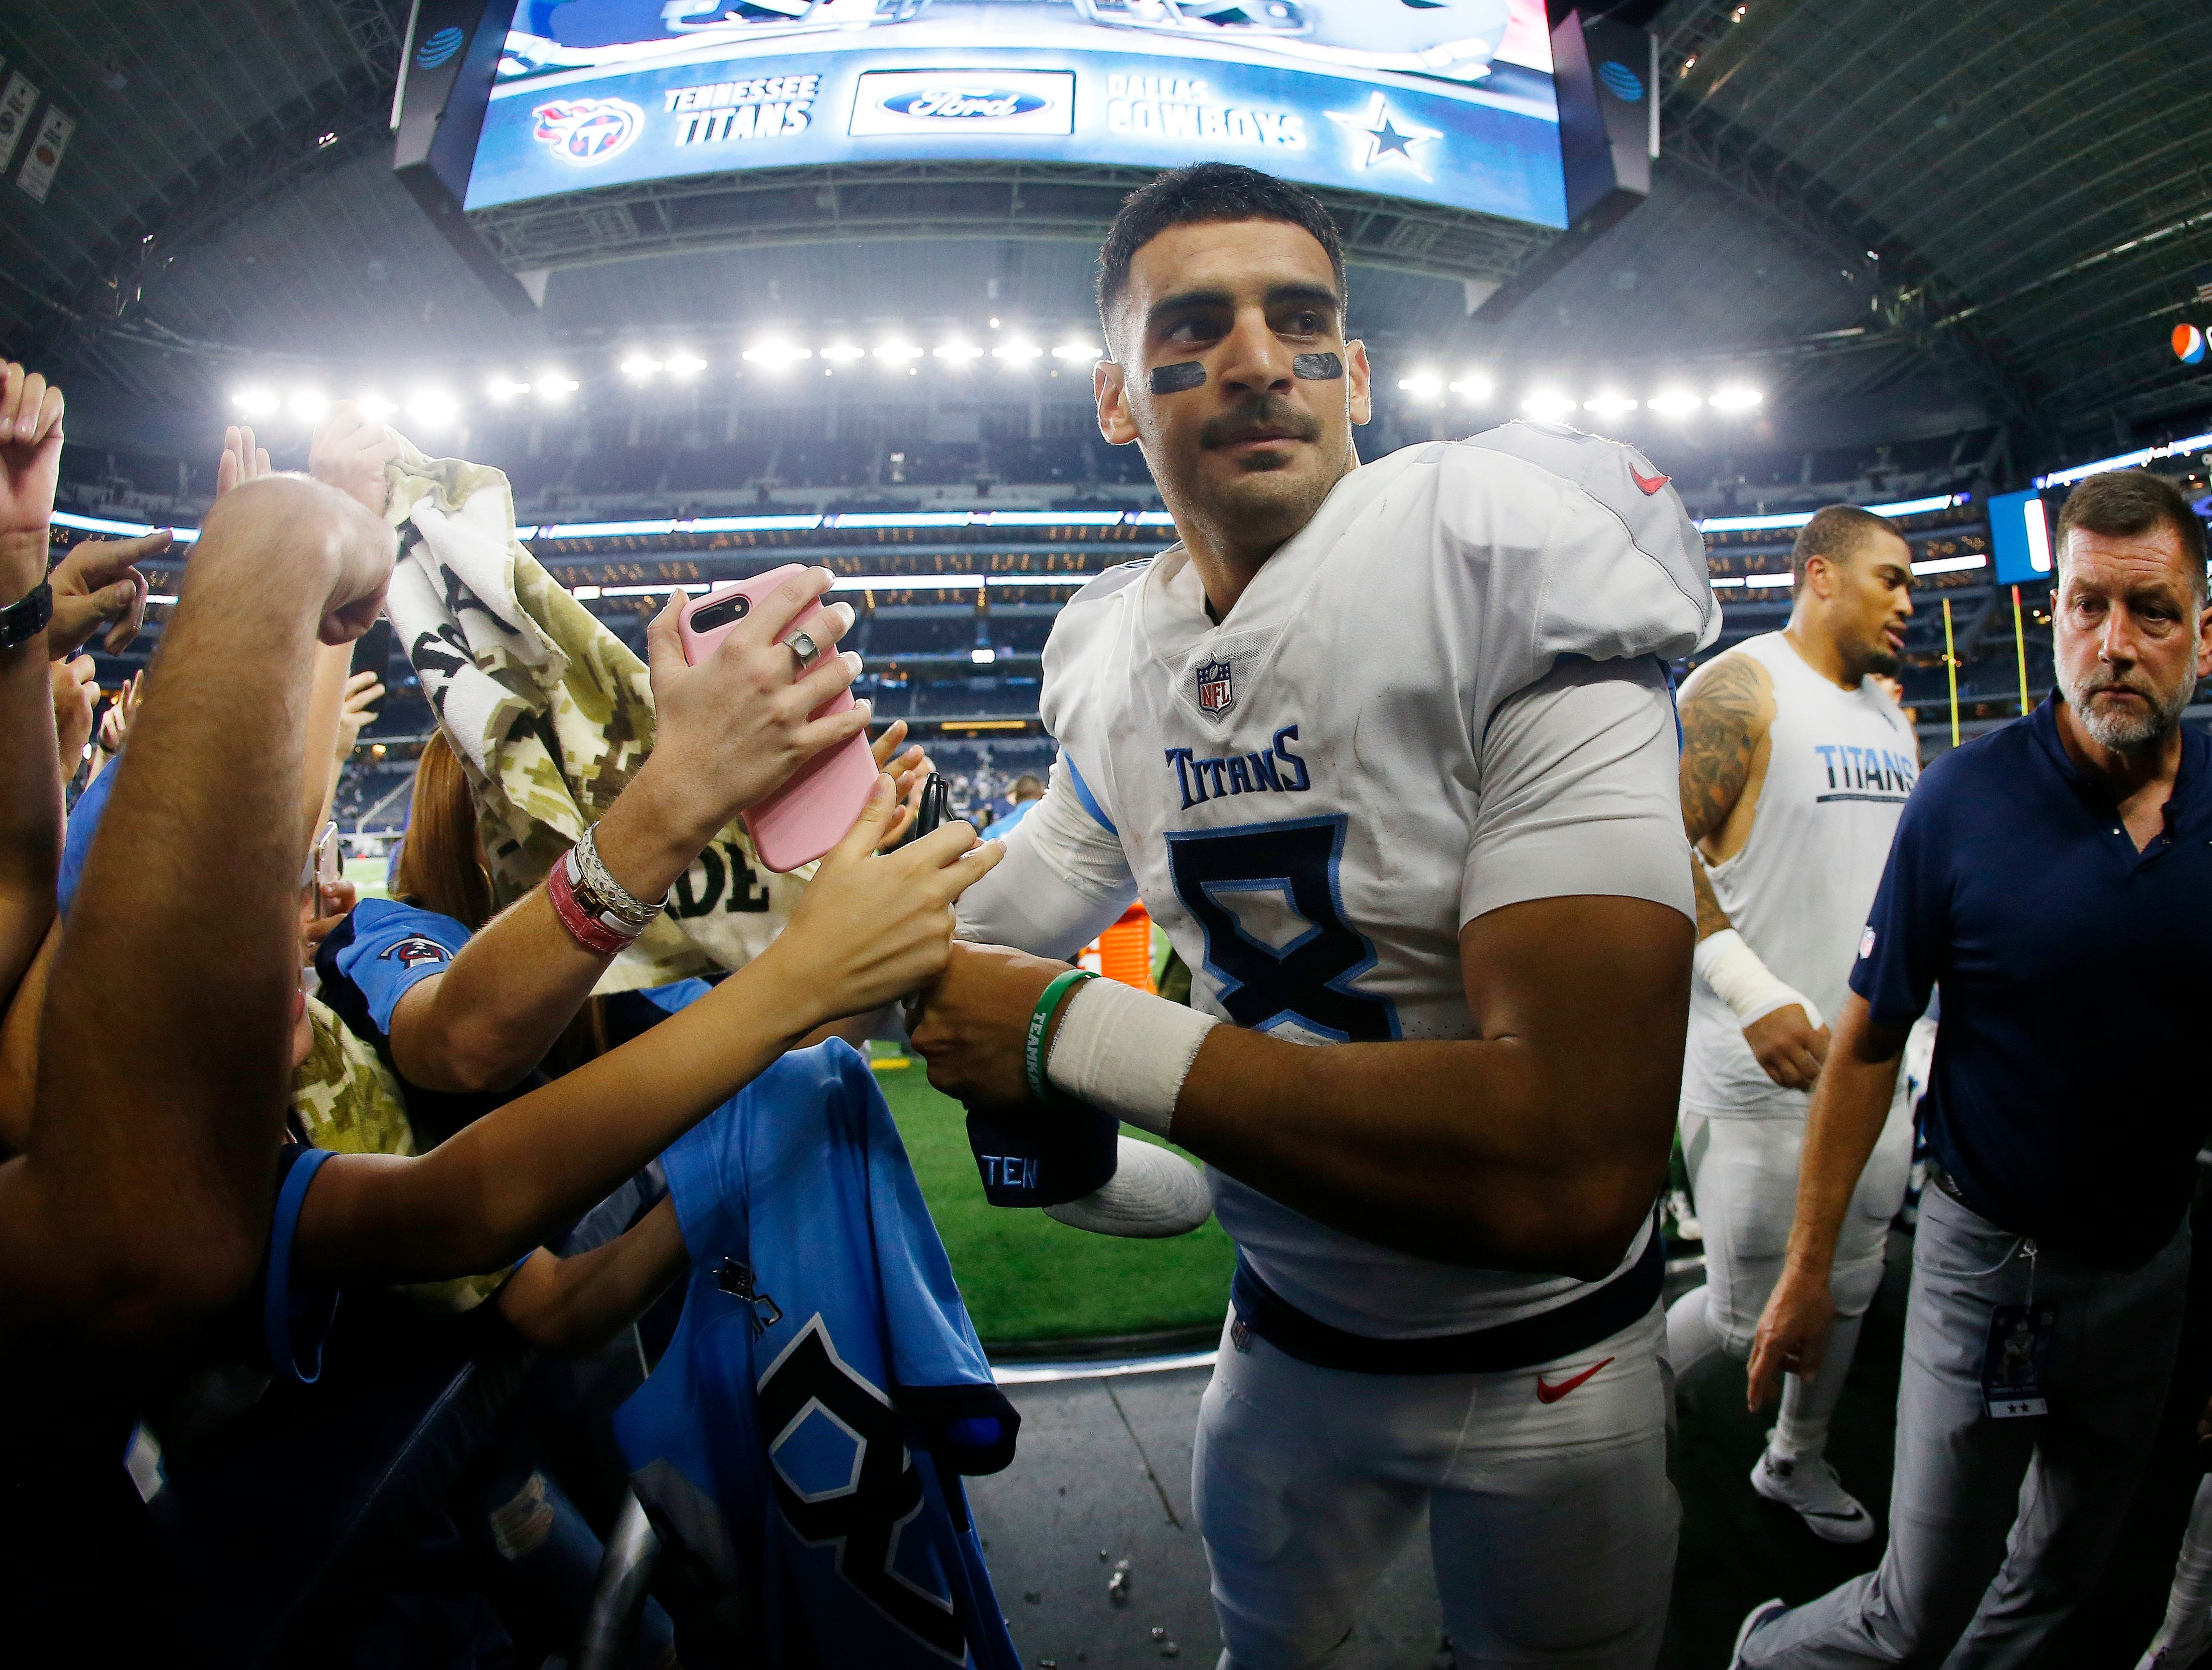 Tennessee Titans quarterback Marcus Mariota (8) greets fans after an NFL football game against the Dallas Cowboys, Monday, Nov. 5, 2018, in Arlington, Texas. The Tennessee Titans won 28-14.